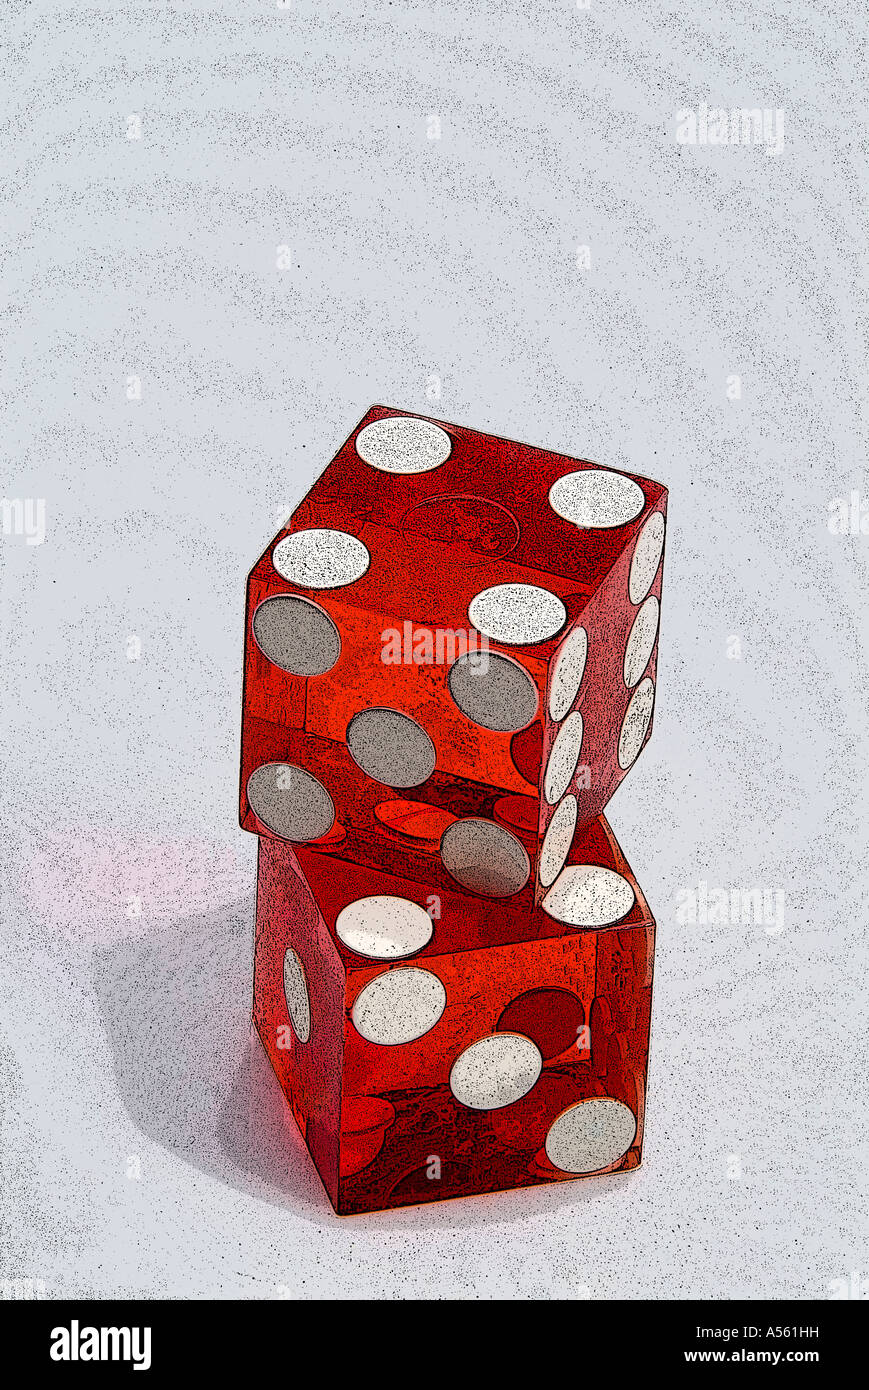 two red casino dice on light background - Stock Image